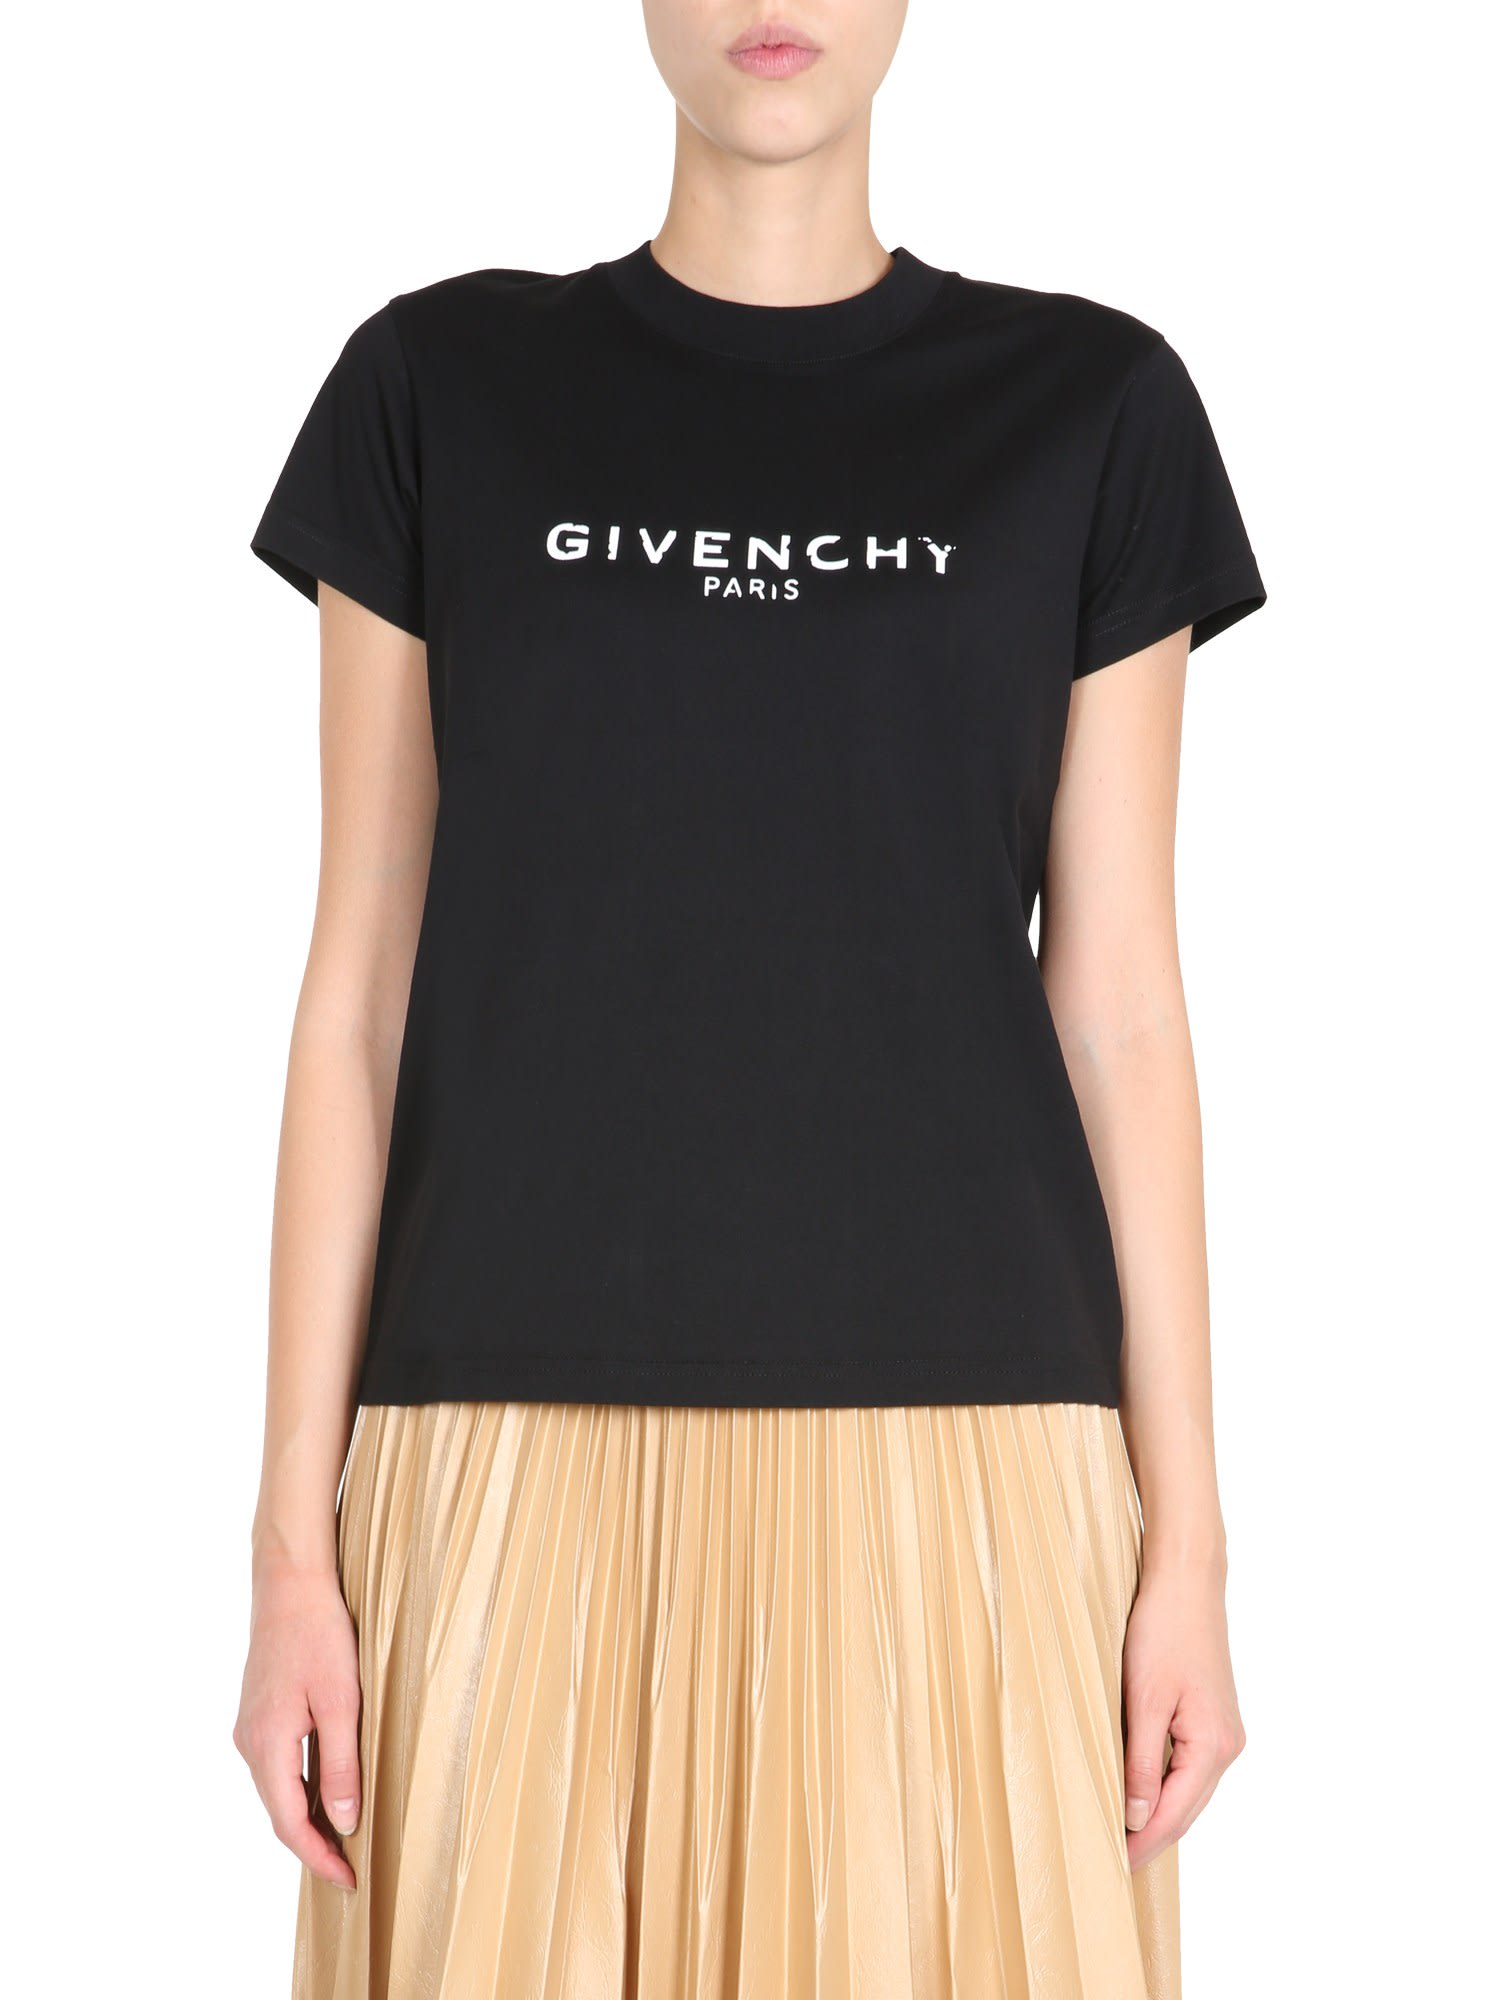 Givenchy Round Neck T-shirt